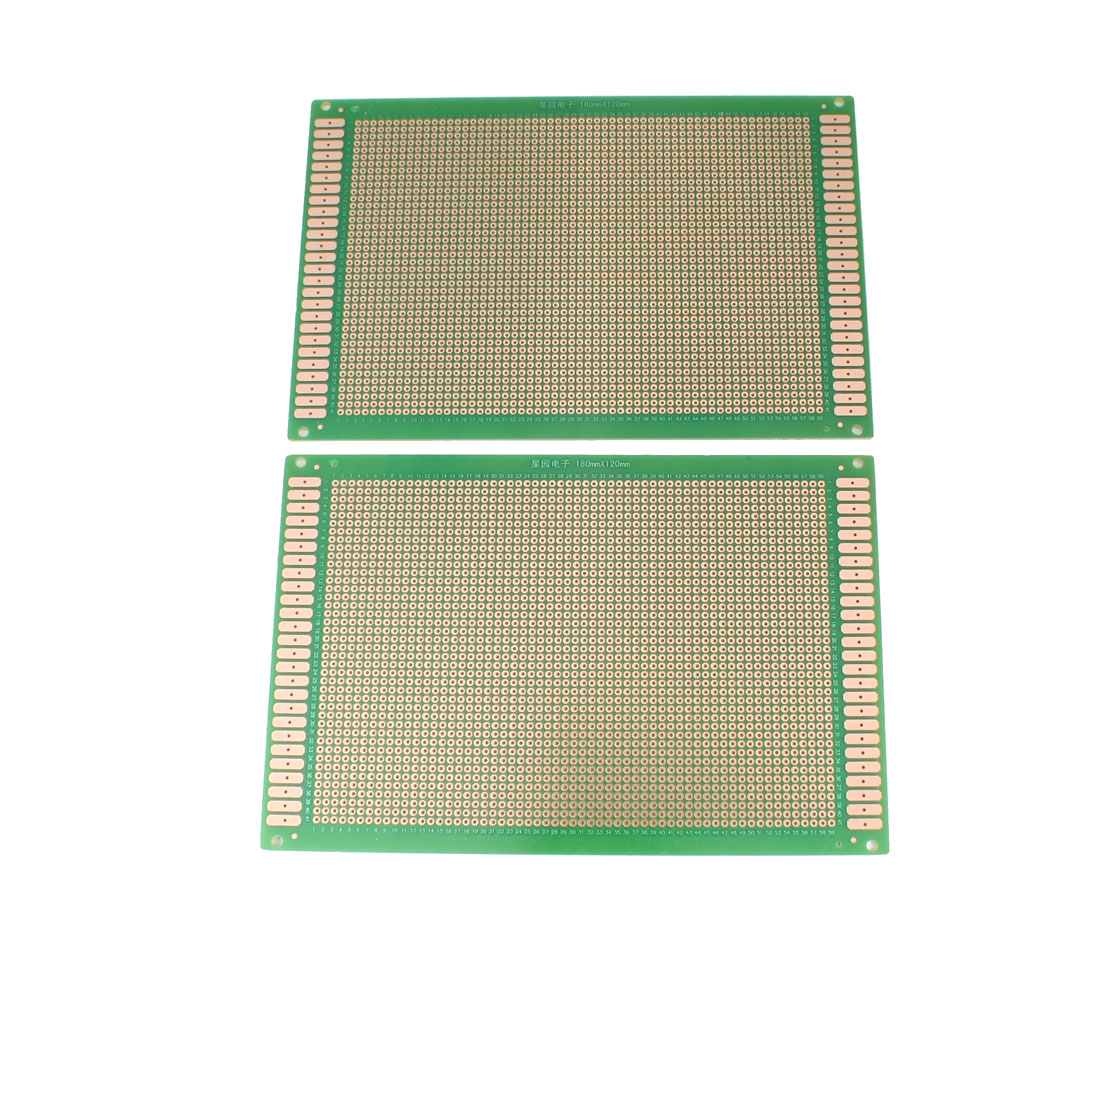 2 Pcs Single Side Prototype PCB Board Green 18 x 12cm